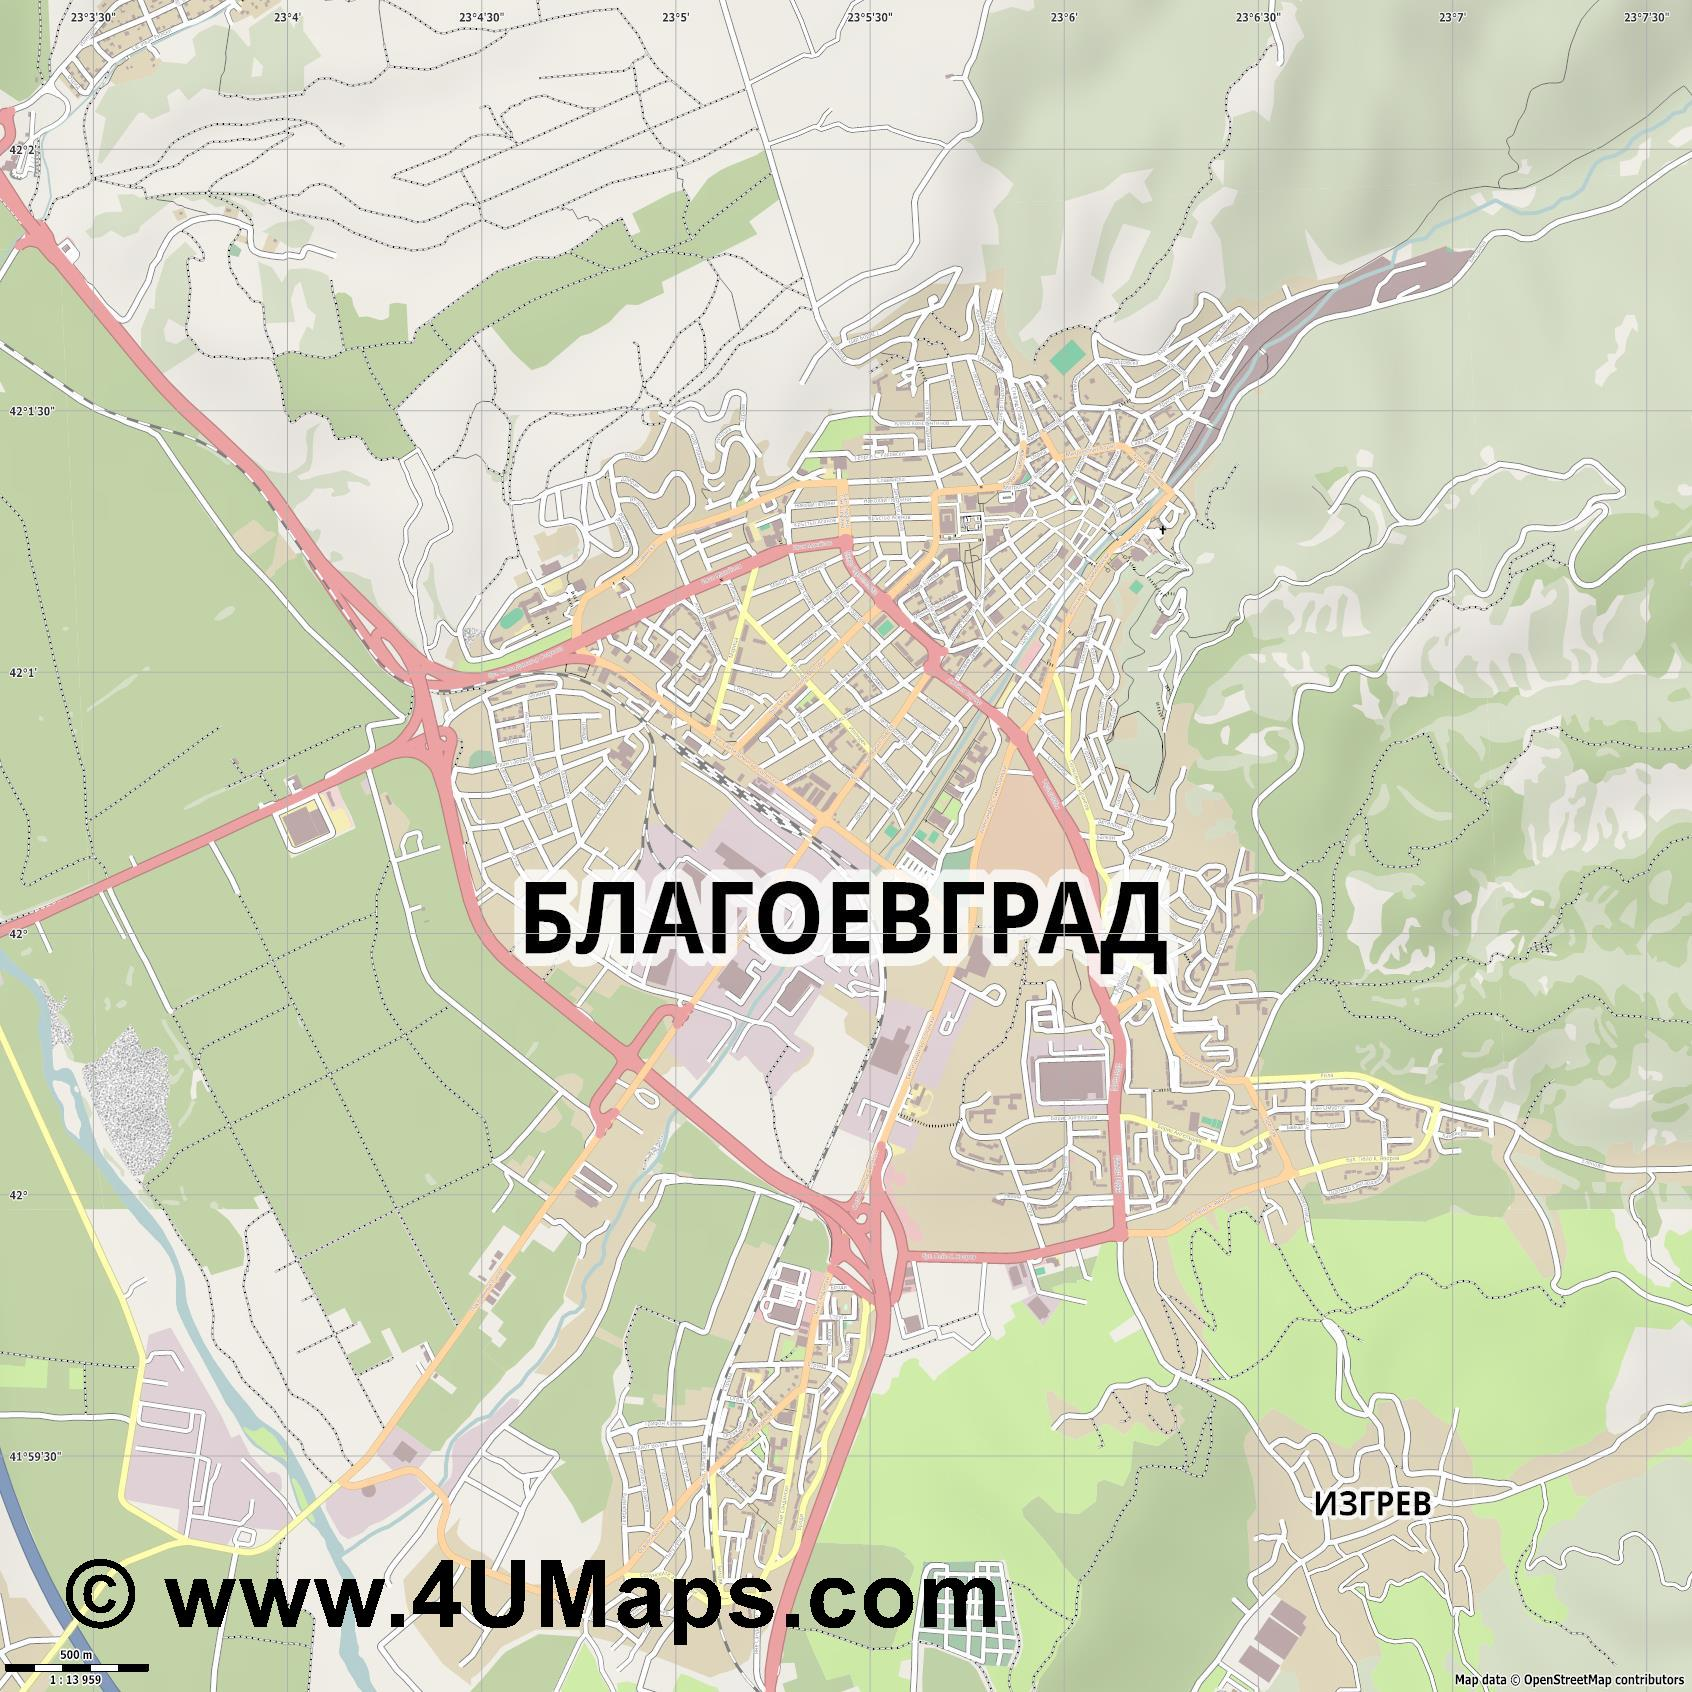 Благоевград Blagoevgrad Blagoewgrad  jpg ultra high detail preview vector city map